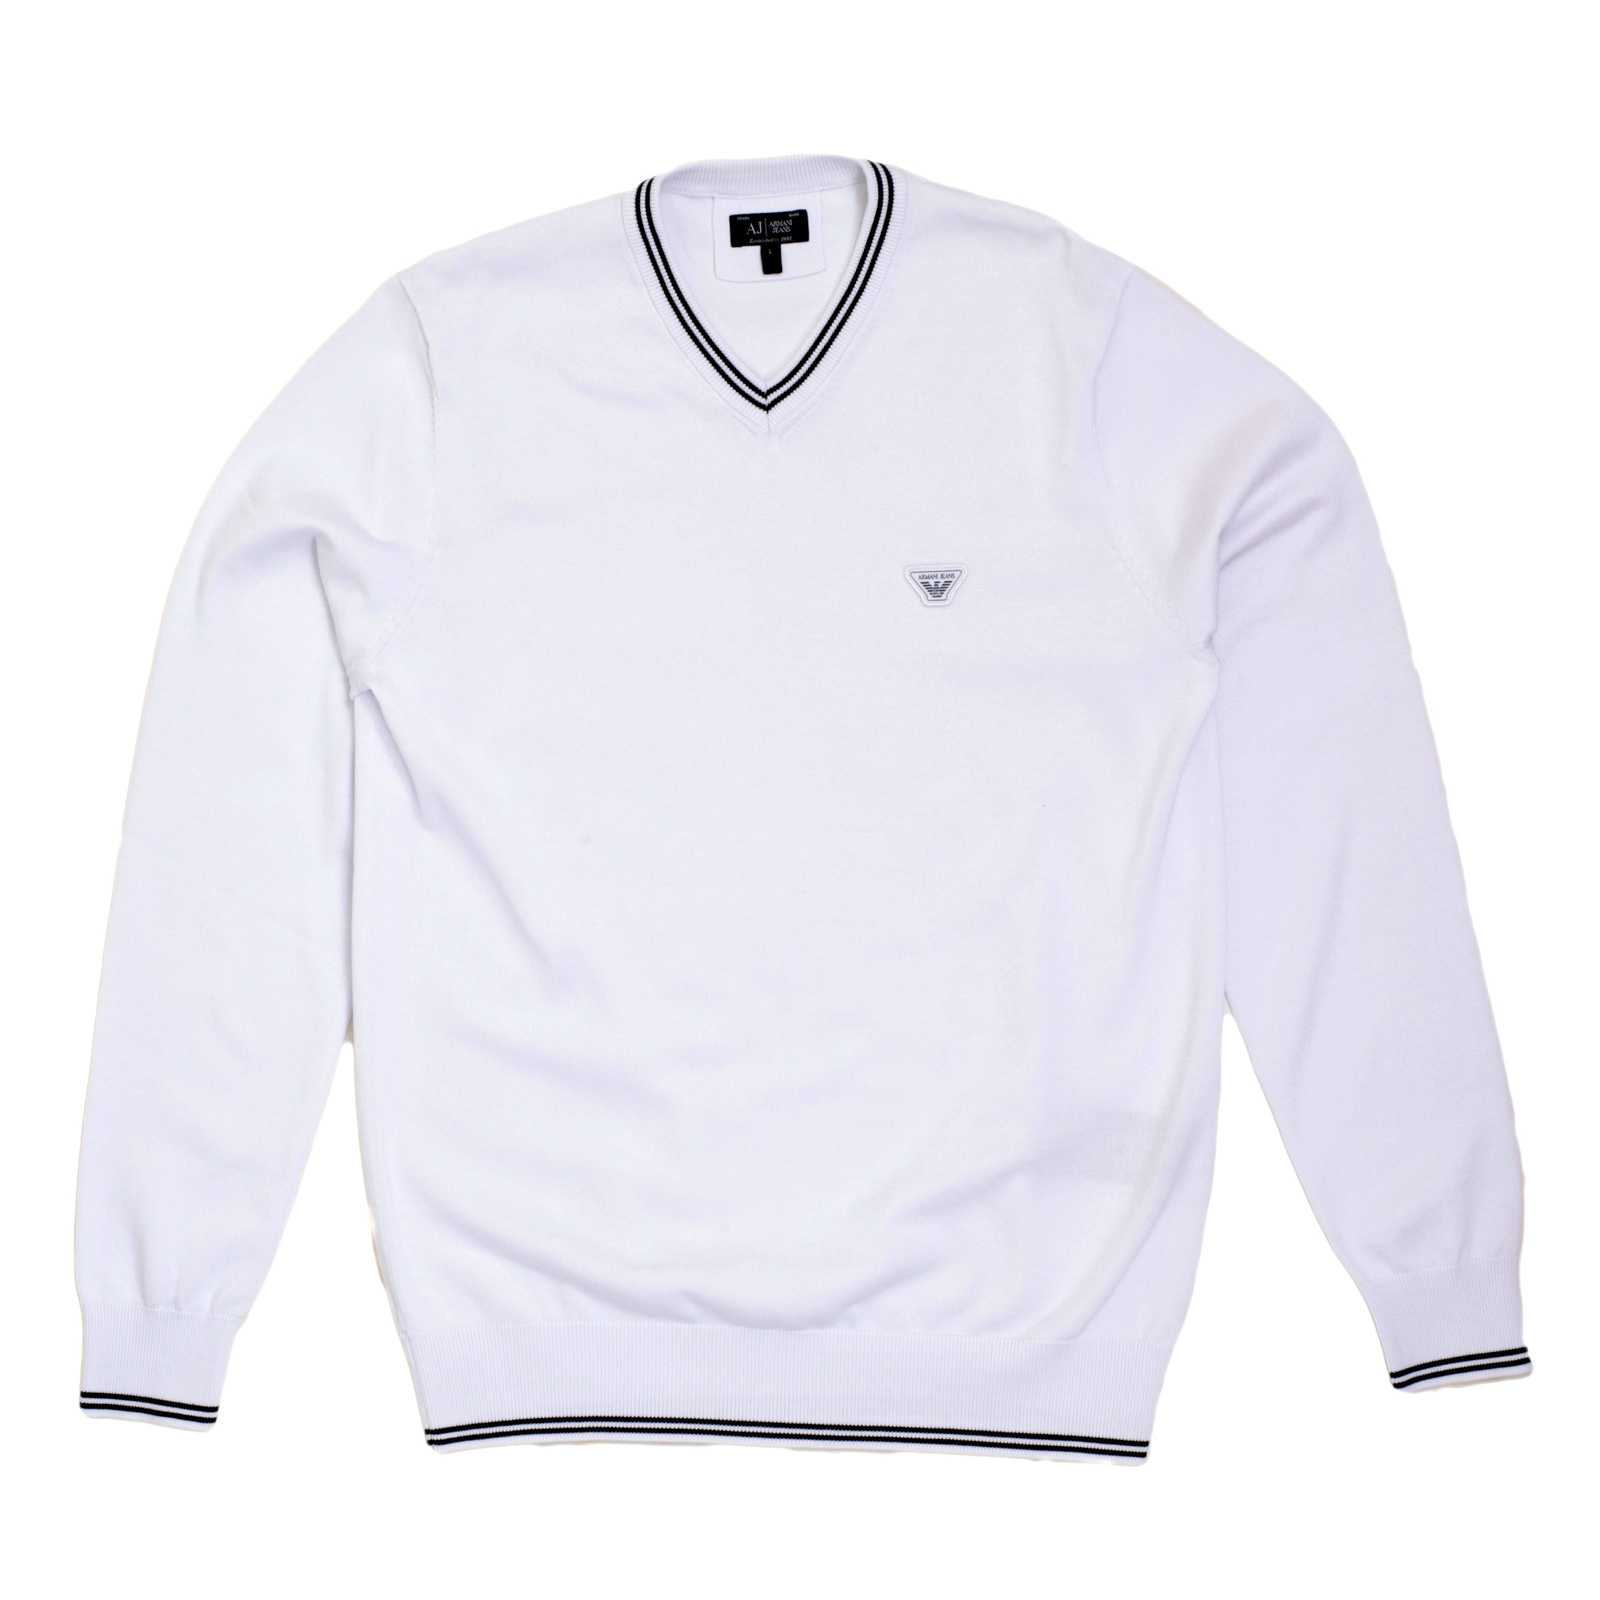 Armani Jeans Full Sleeve V Neck Regular Fit White Knitted Sweater with a  Signature Applique Chest